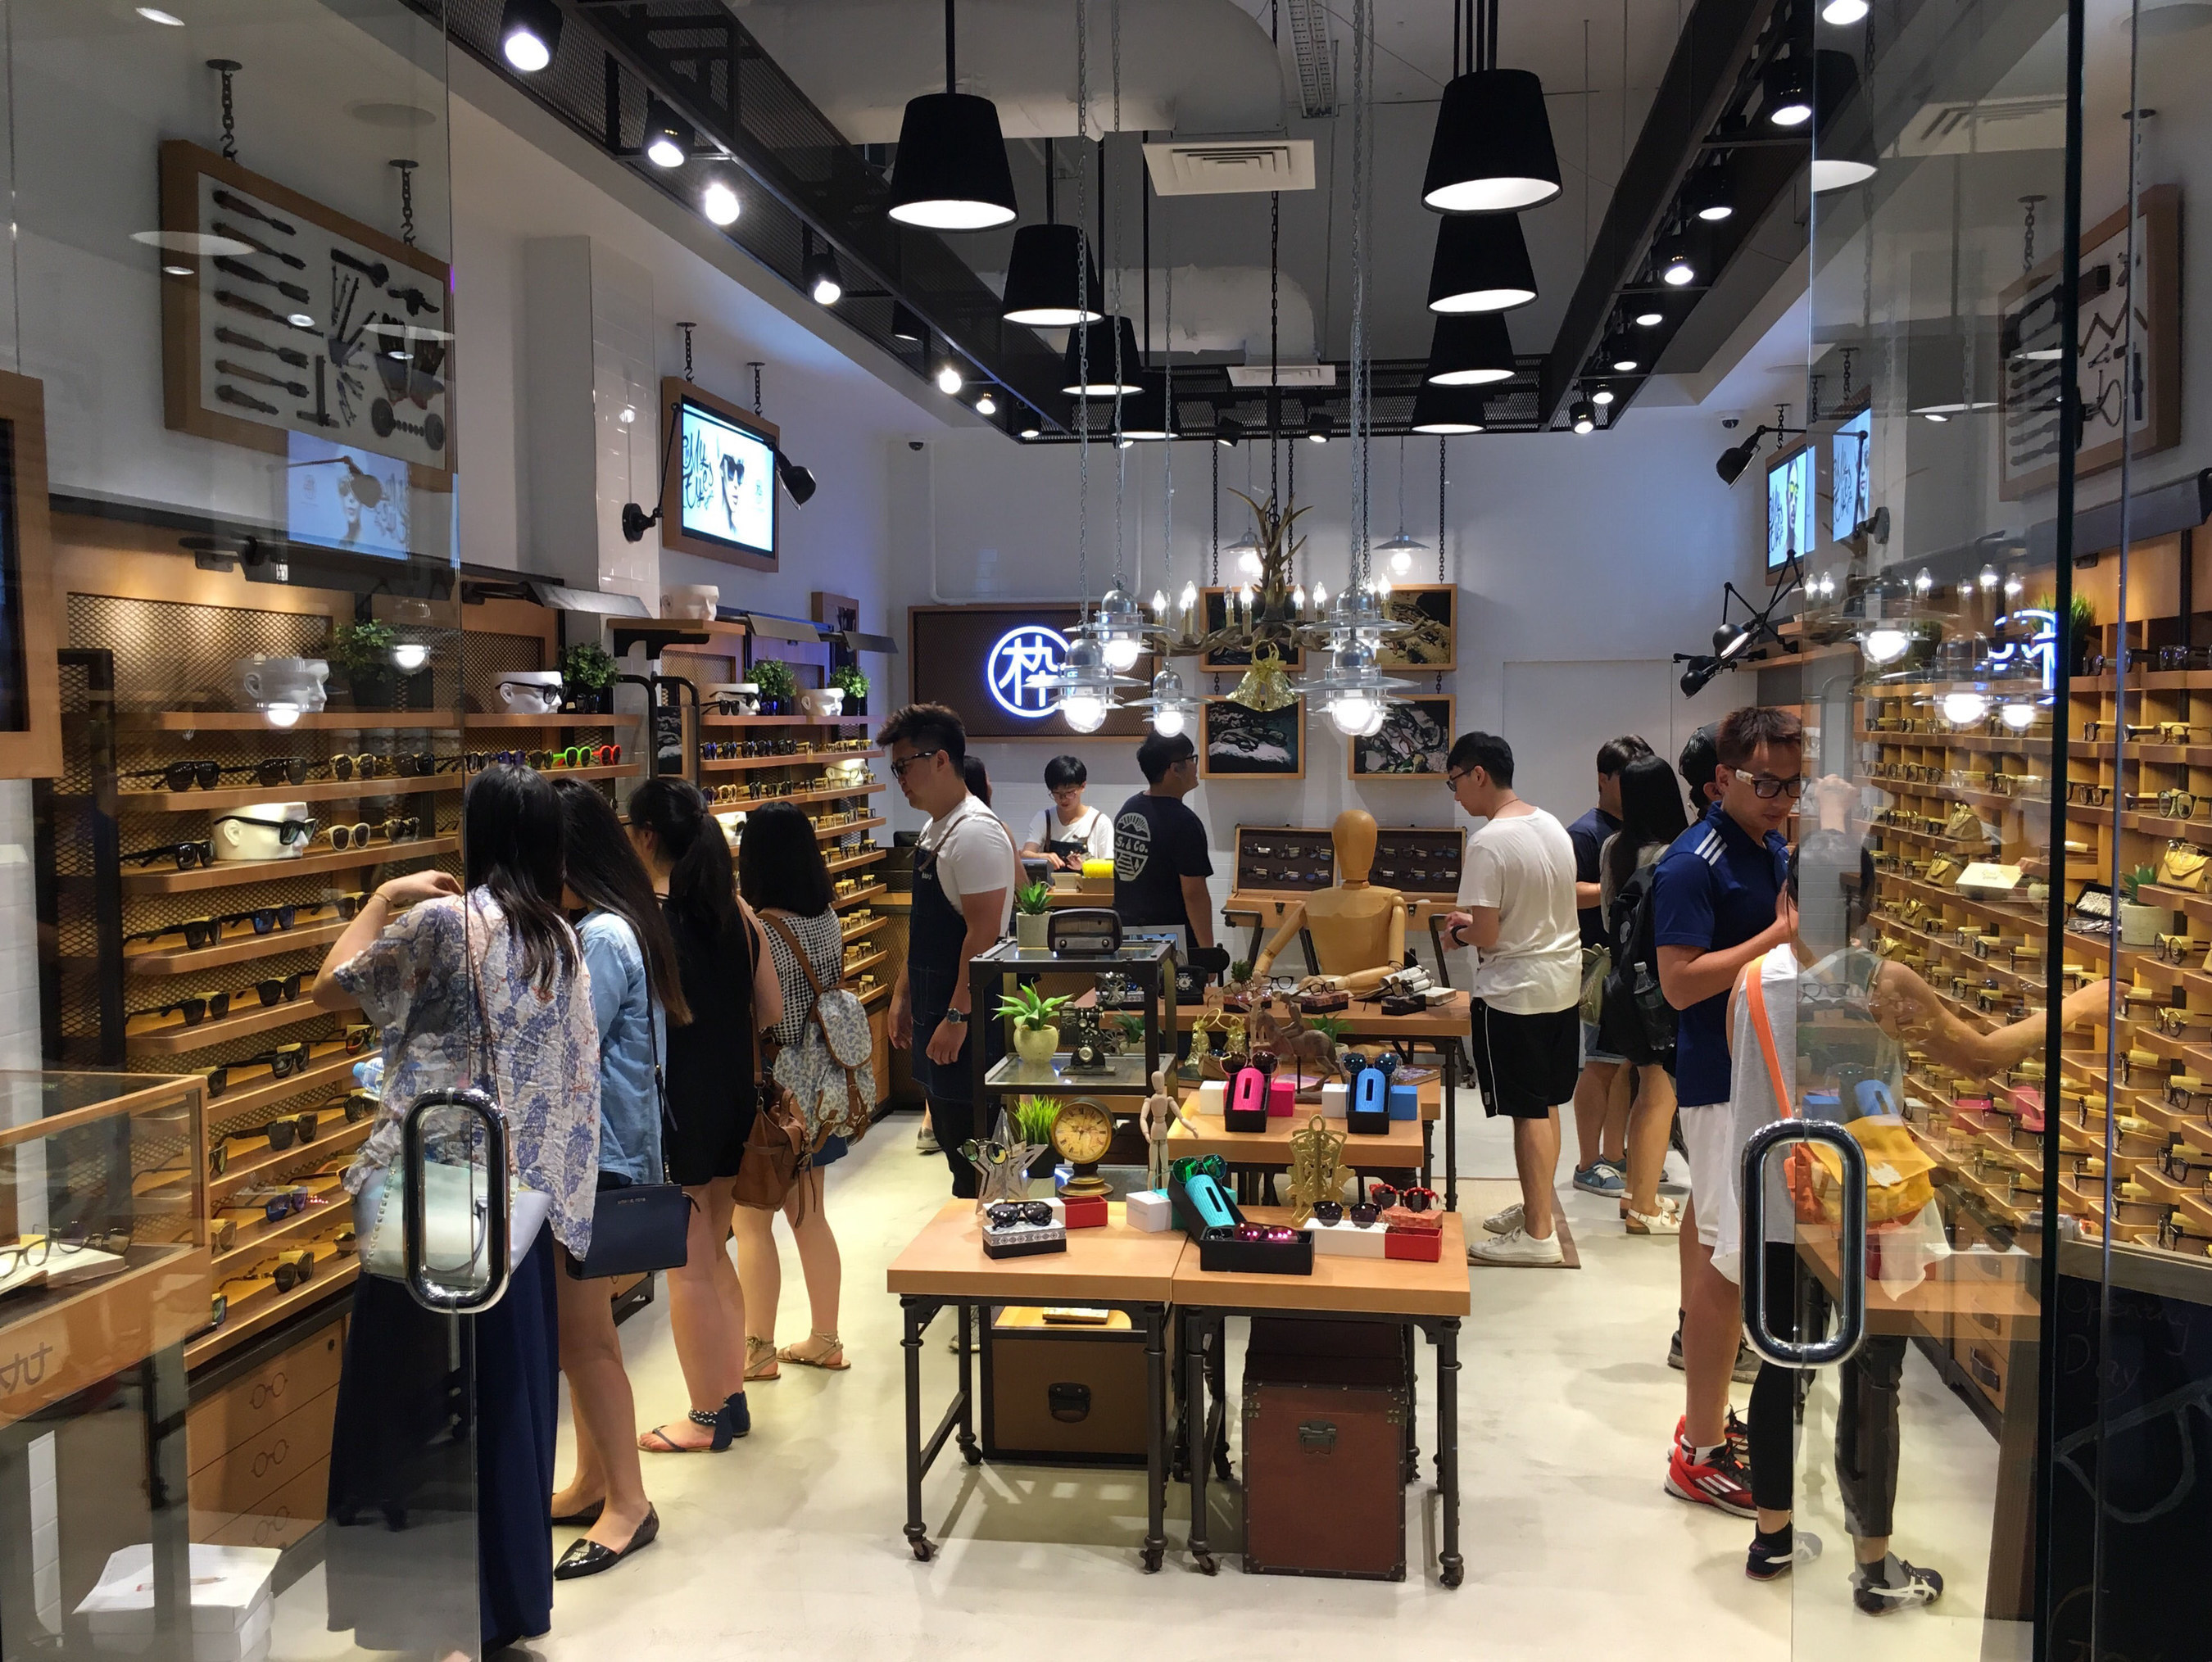 The MUJOSH store in Melbourne Central attracting customers on opening day